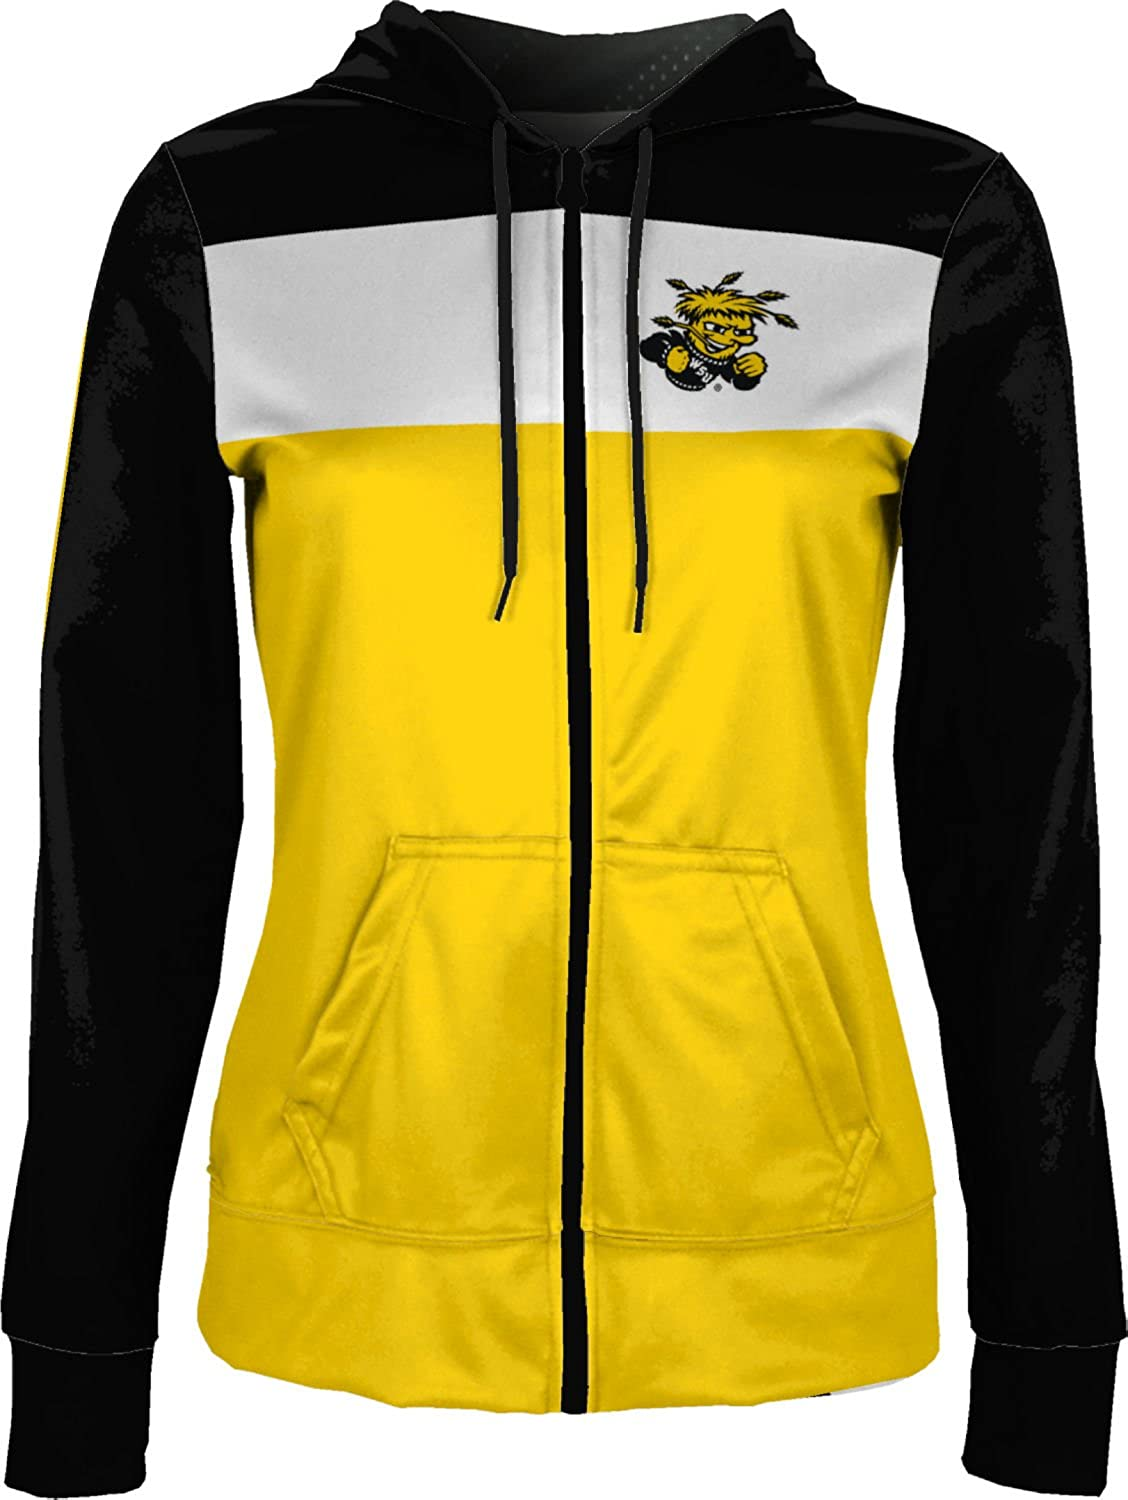 Wichita State University Girls Zipper Hoodie School Spirit Sweatshirt Prime